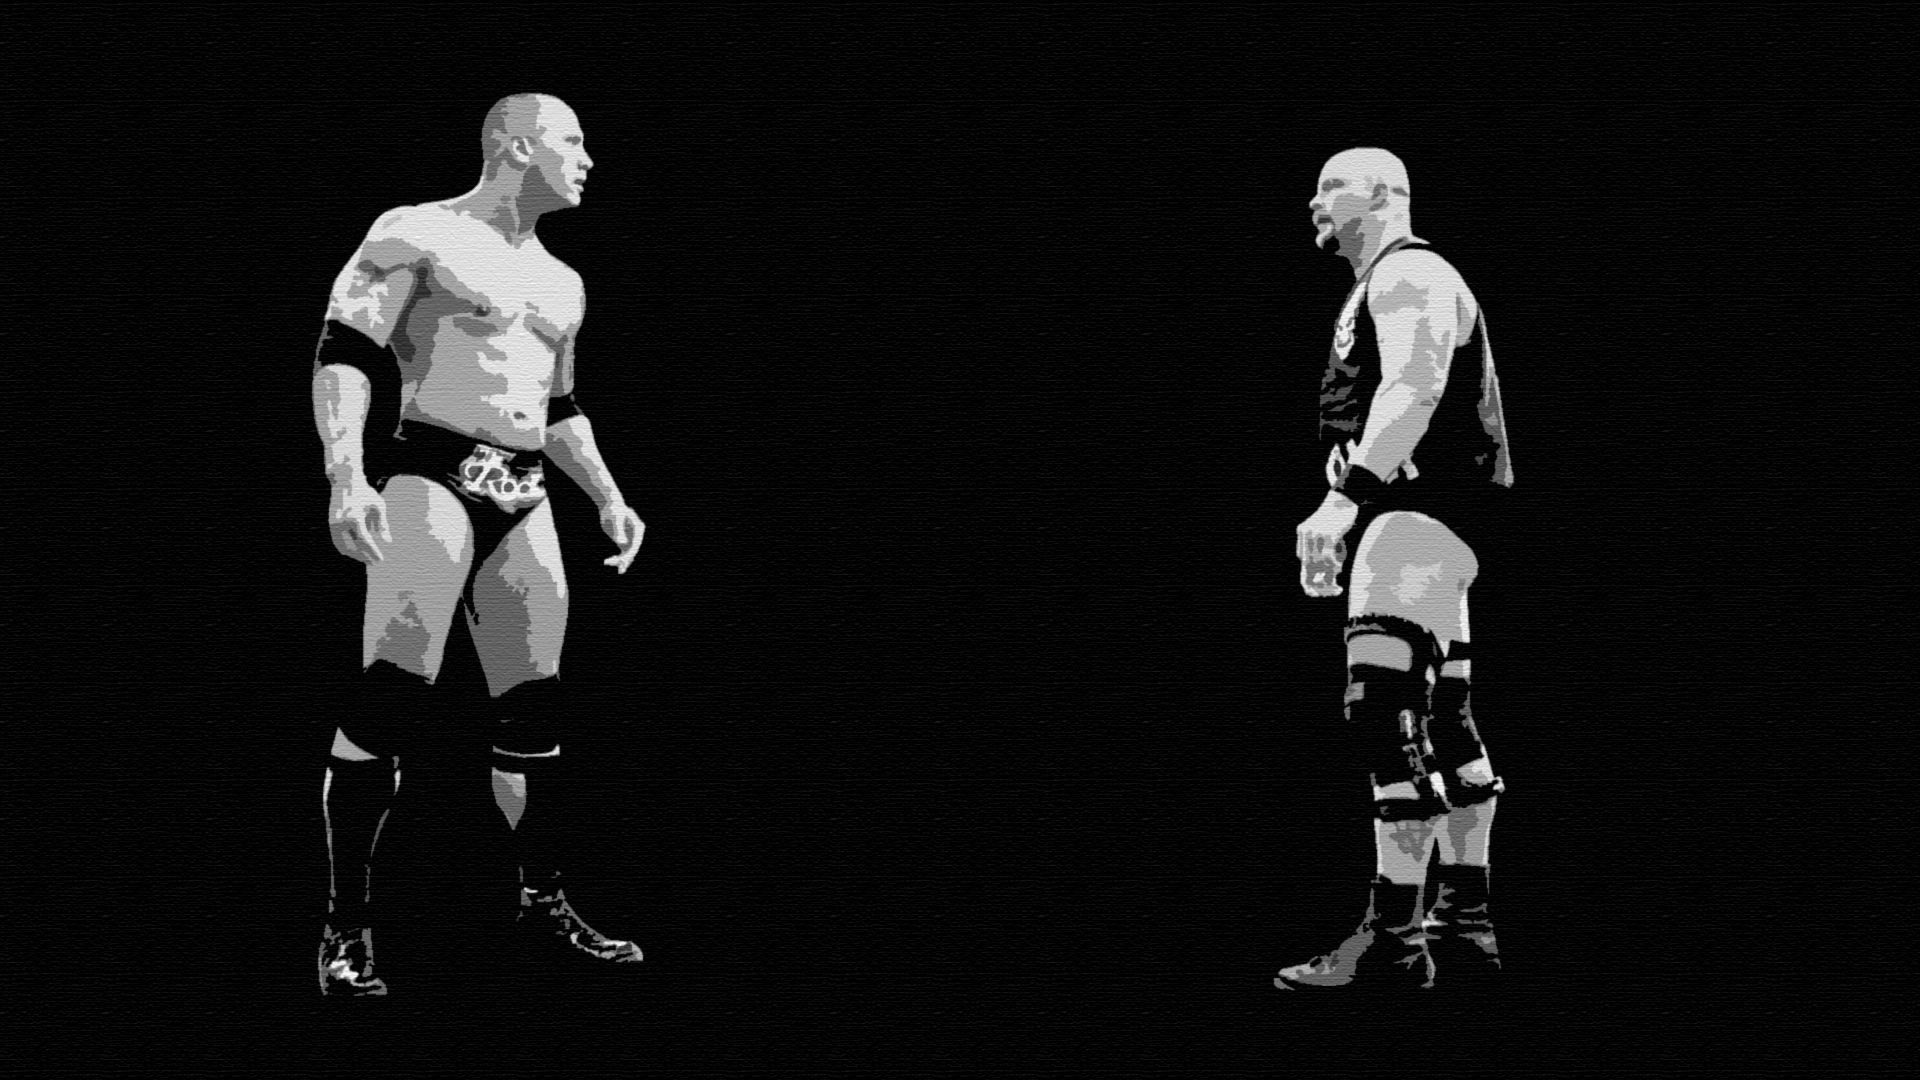 1920x1080 0 Wrestling Wallpapers Free Download Wrestling Wallpapers IGN Boards